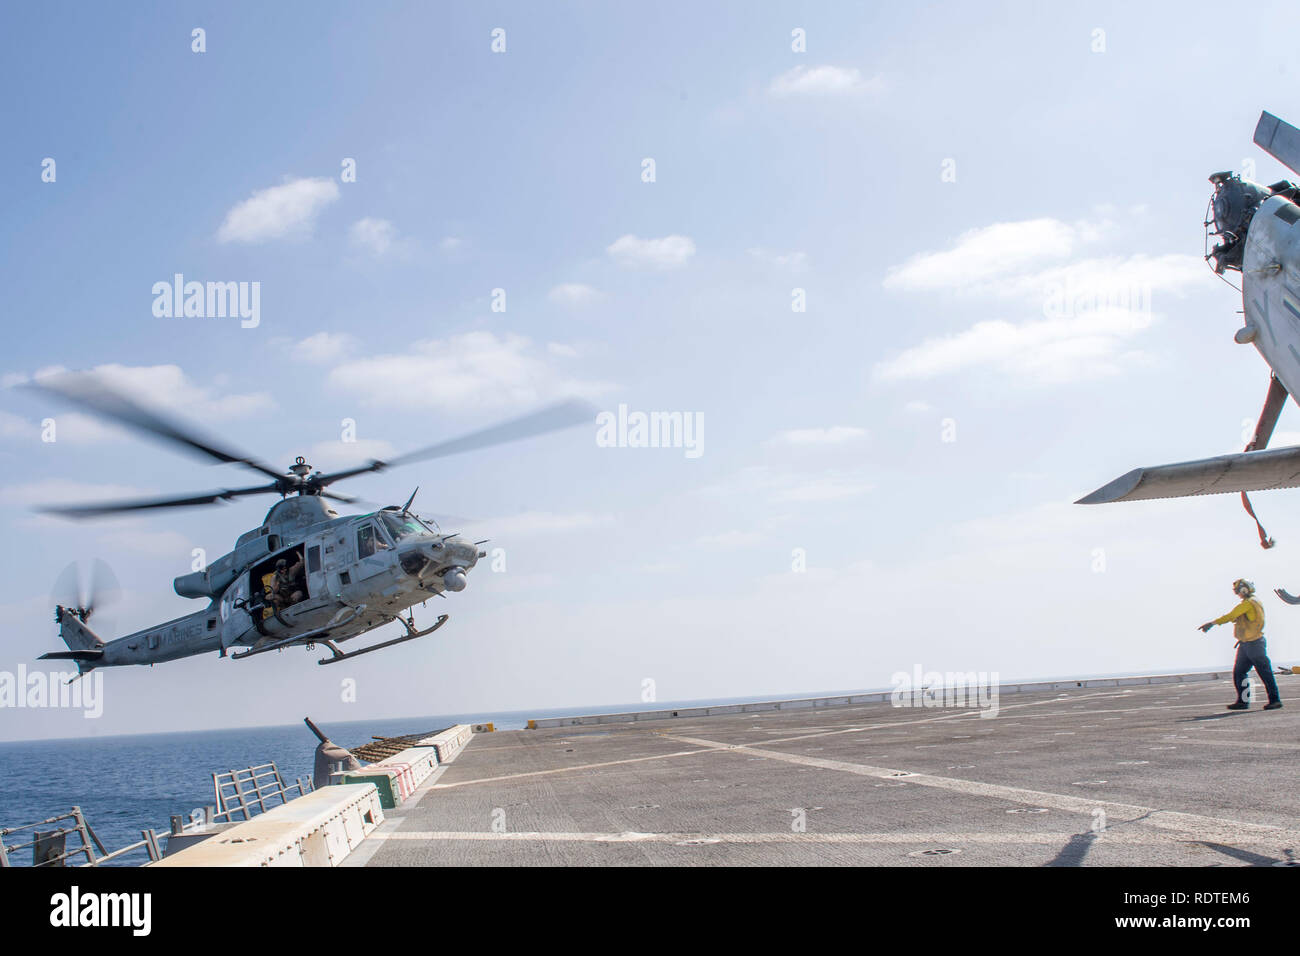 190116-N-PH222-1002 ARABIAN SEA (Jan. 16, 2018) A UH-1Y Venom helicopter, attached to Marine Medium Tiltrotor Squadron (VMM) 166 (Reinforced), prepares to land on the flight deck of the San Antonio-class amphibious transport dock ship USS Anchorage (LPD 23) while on a deployment of the Essex Amphibious Ready Group (ARG) and 13th Marine Expeditionary Unit (MEU). The Essex ARG/13th MEU is flexible and persistent Navy-Marine Corps team deployed to the U.S. 5th Fleet area of operations in support of naval operations to ensure maritime stability and security in the Central Region, connecting the Me - Stock Image